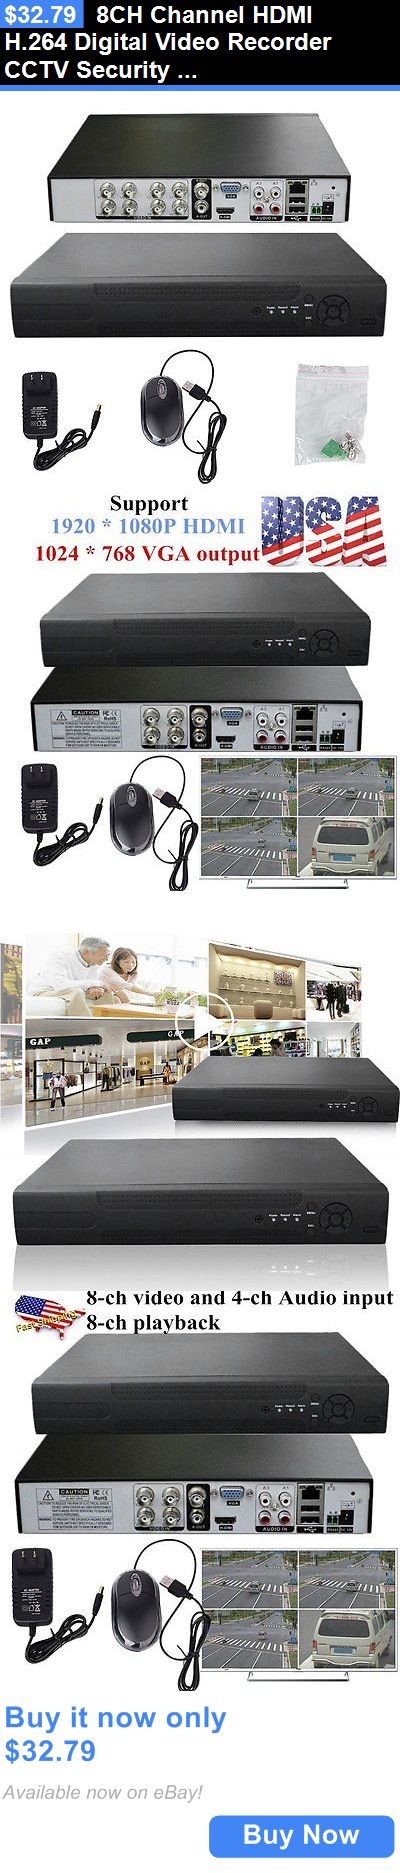 Digital Video Recorders Cards: 8Ch Channel Hdmi H.264 Digital Video Recorder Cctv Security System Us Stock Uy BUY IT NOW ONLY: $32.79